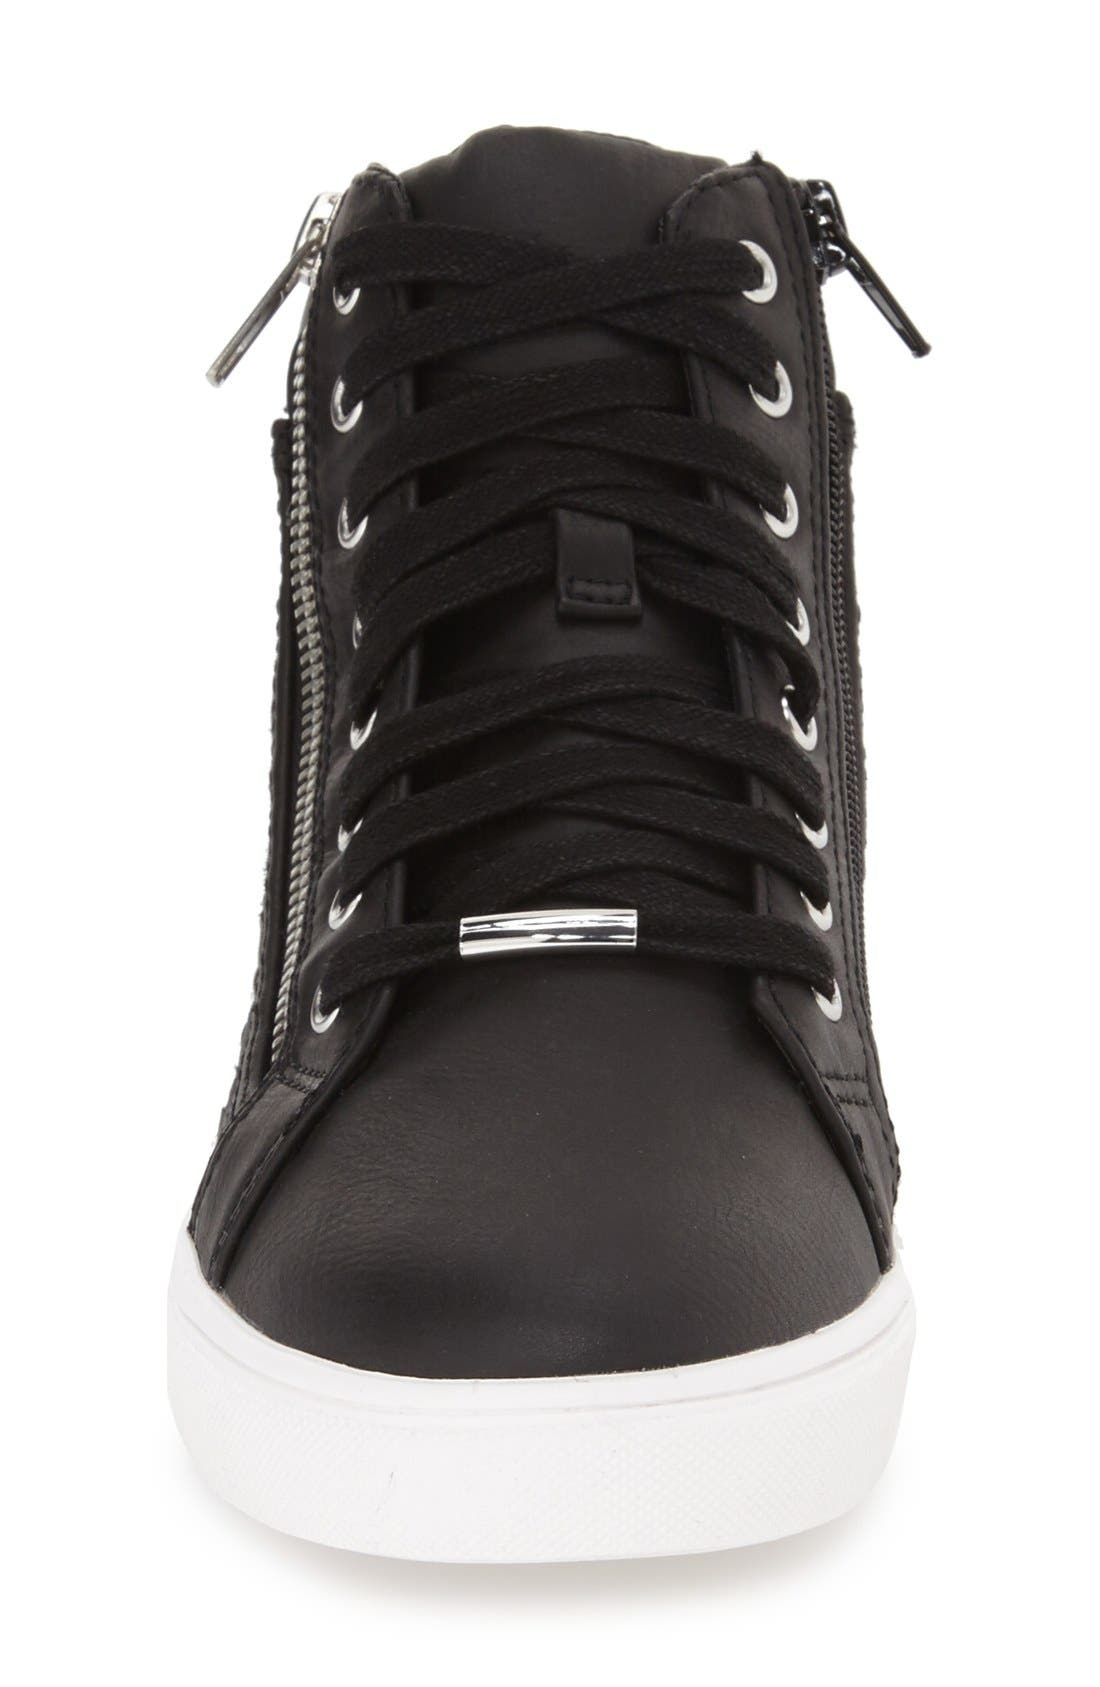 Alternate Image 3  - Steve Madden 'Eiris' Sneaker (Women)